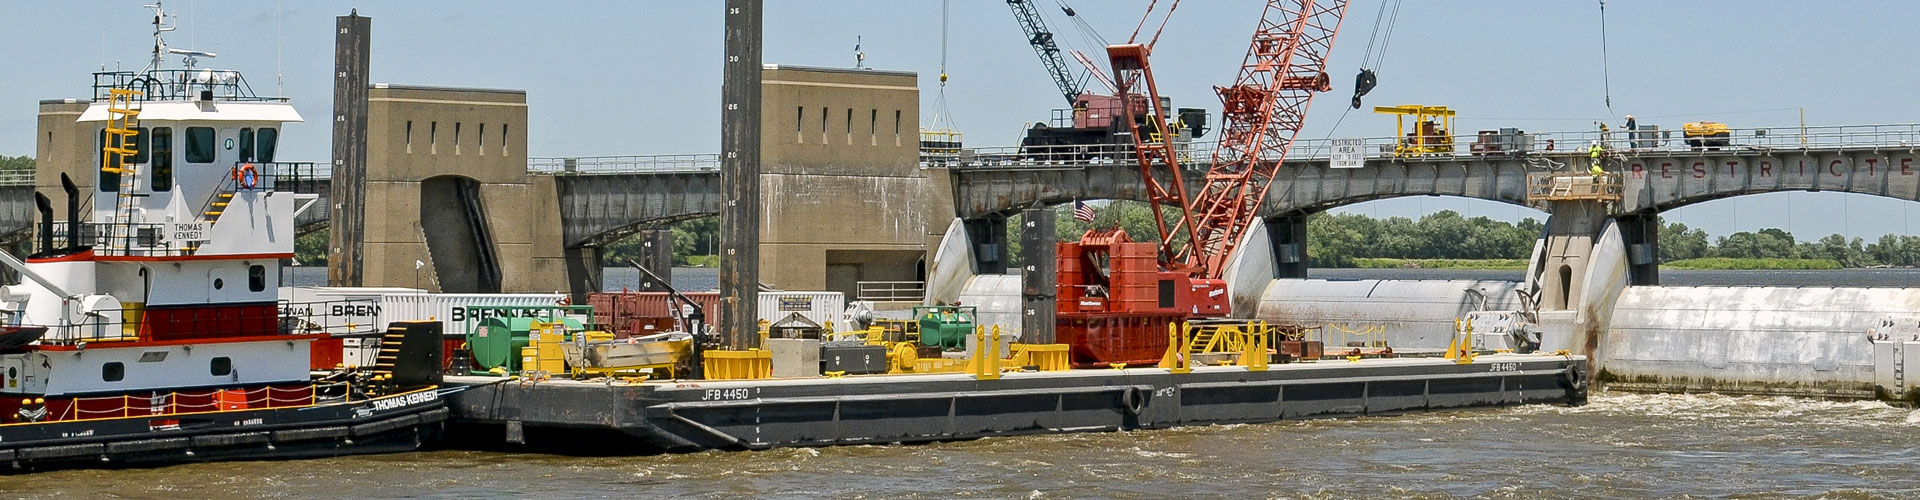 lock and dams, locks and dams, mississippi river, lock and dam construction, dam construction, marine construction, gate repairs